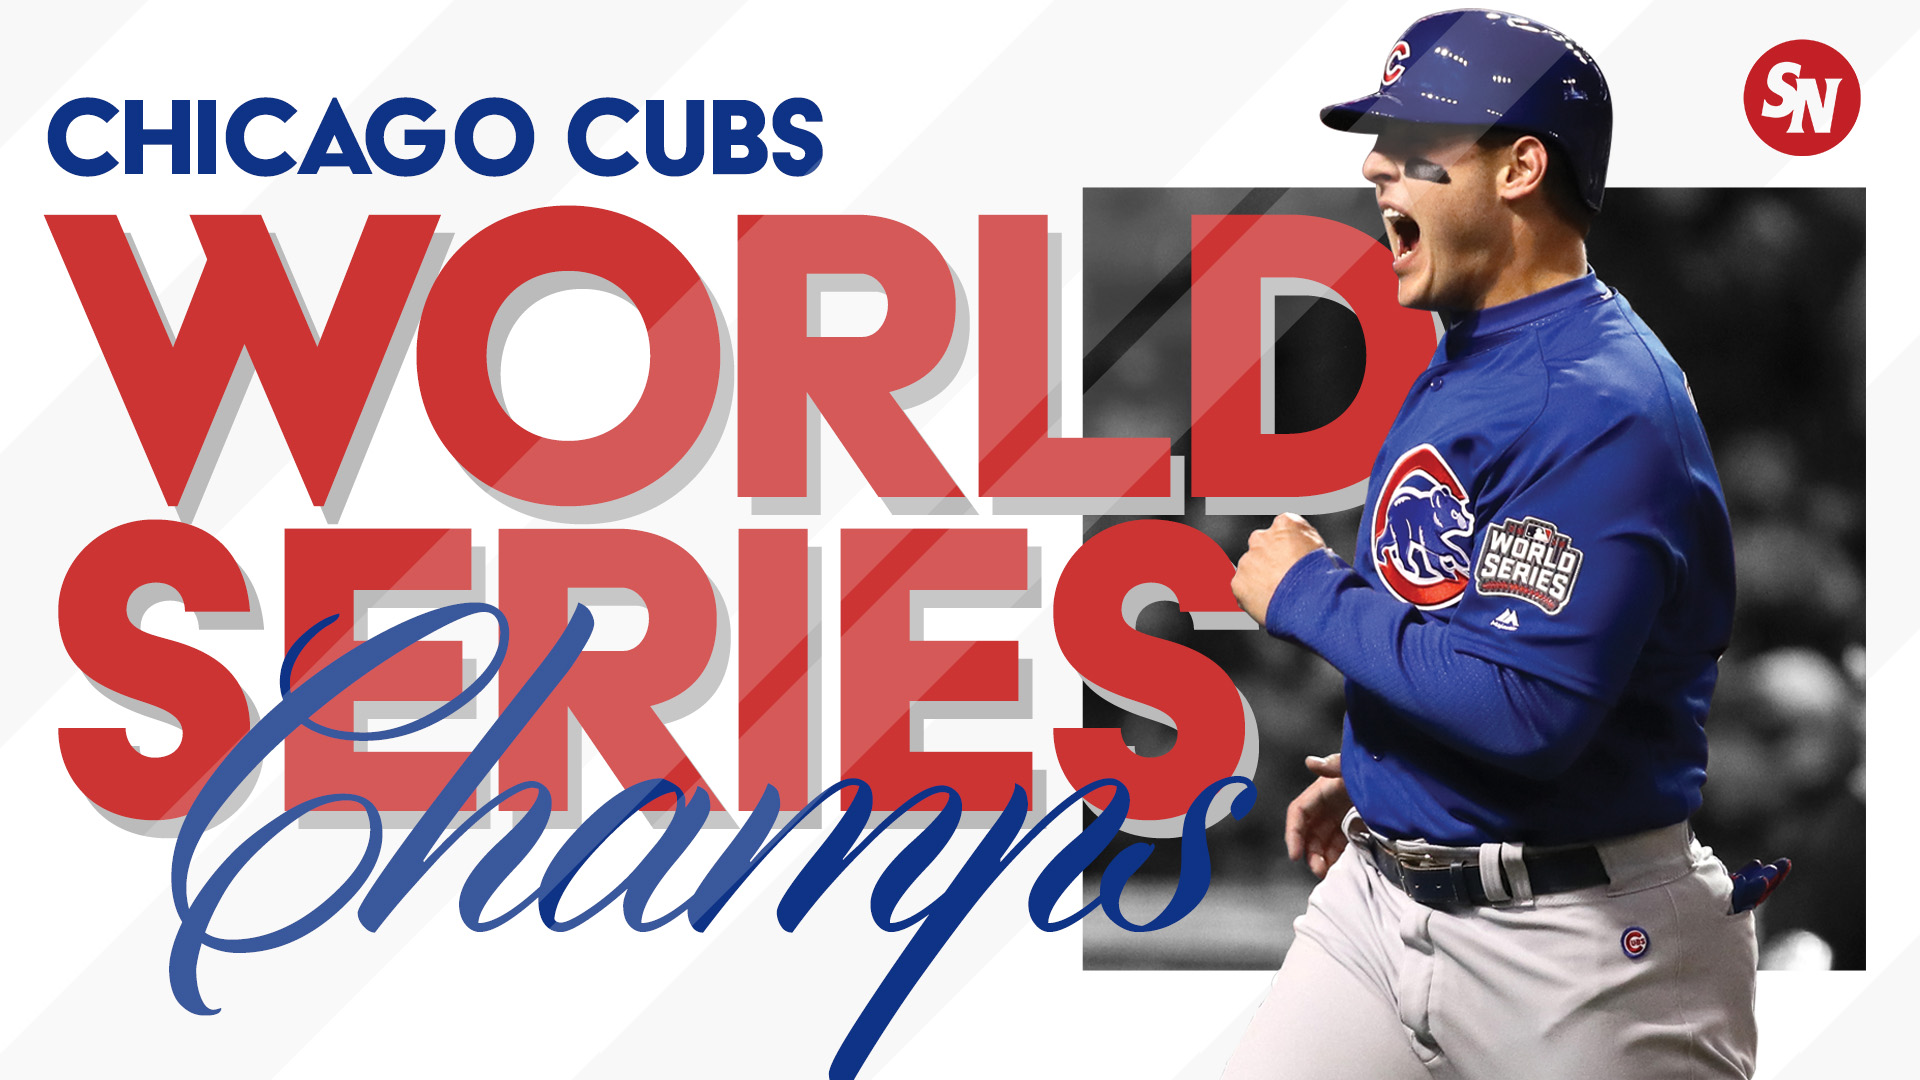 Cubs Win World Series For First Time In 108 Years Sporting News